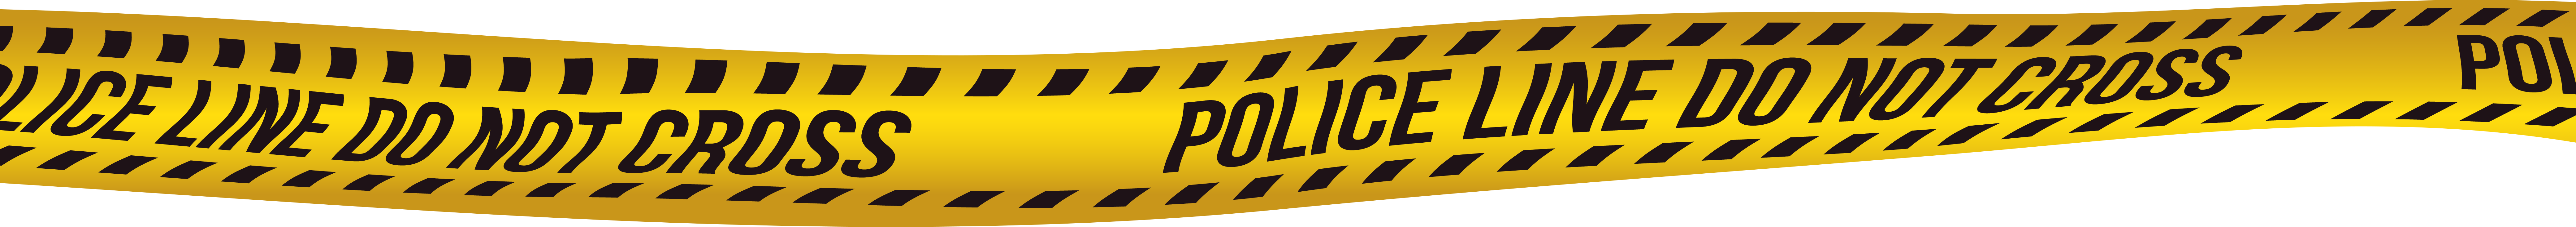 Cross clip line. Police do not png